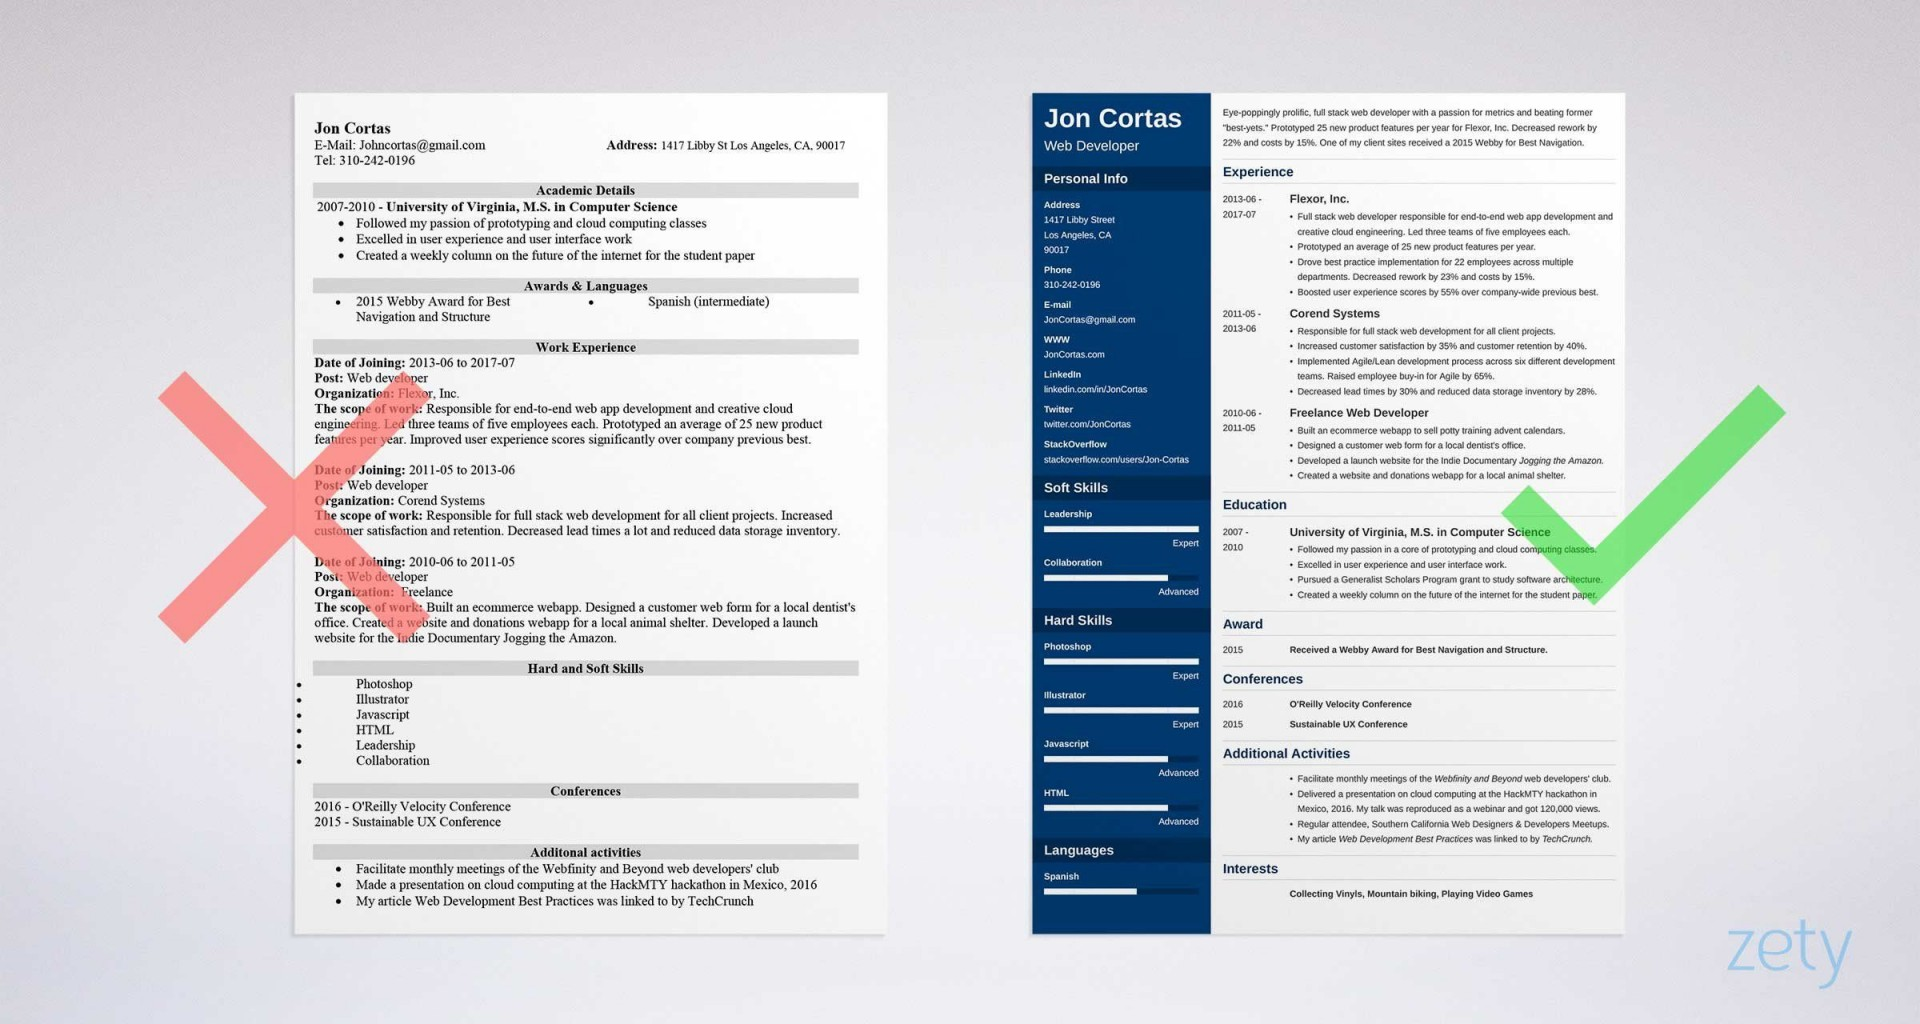 008 Exceptional Resume Template Word 2016 Design  Cv Professional1920